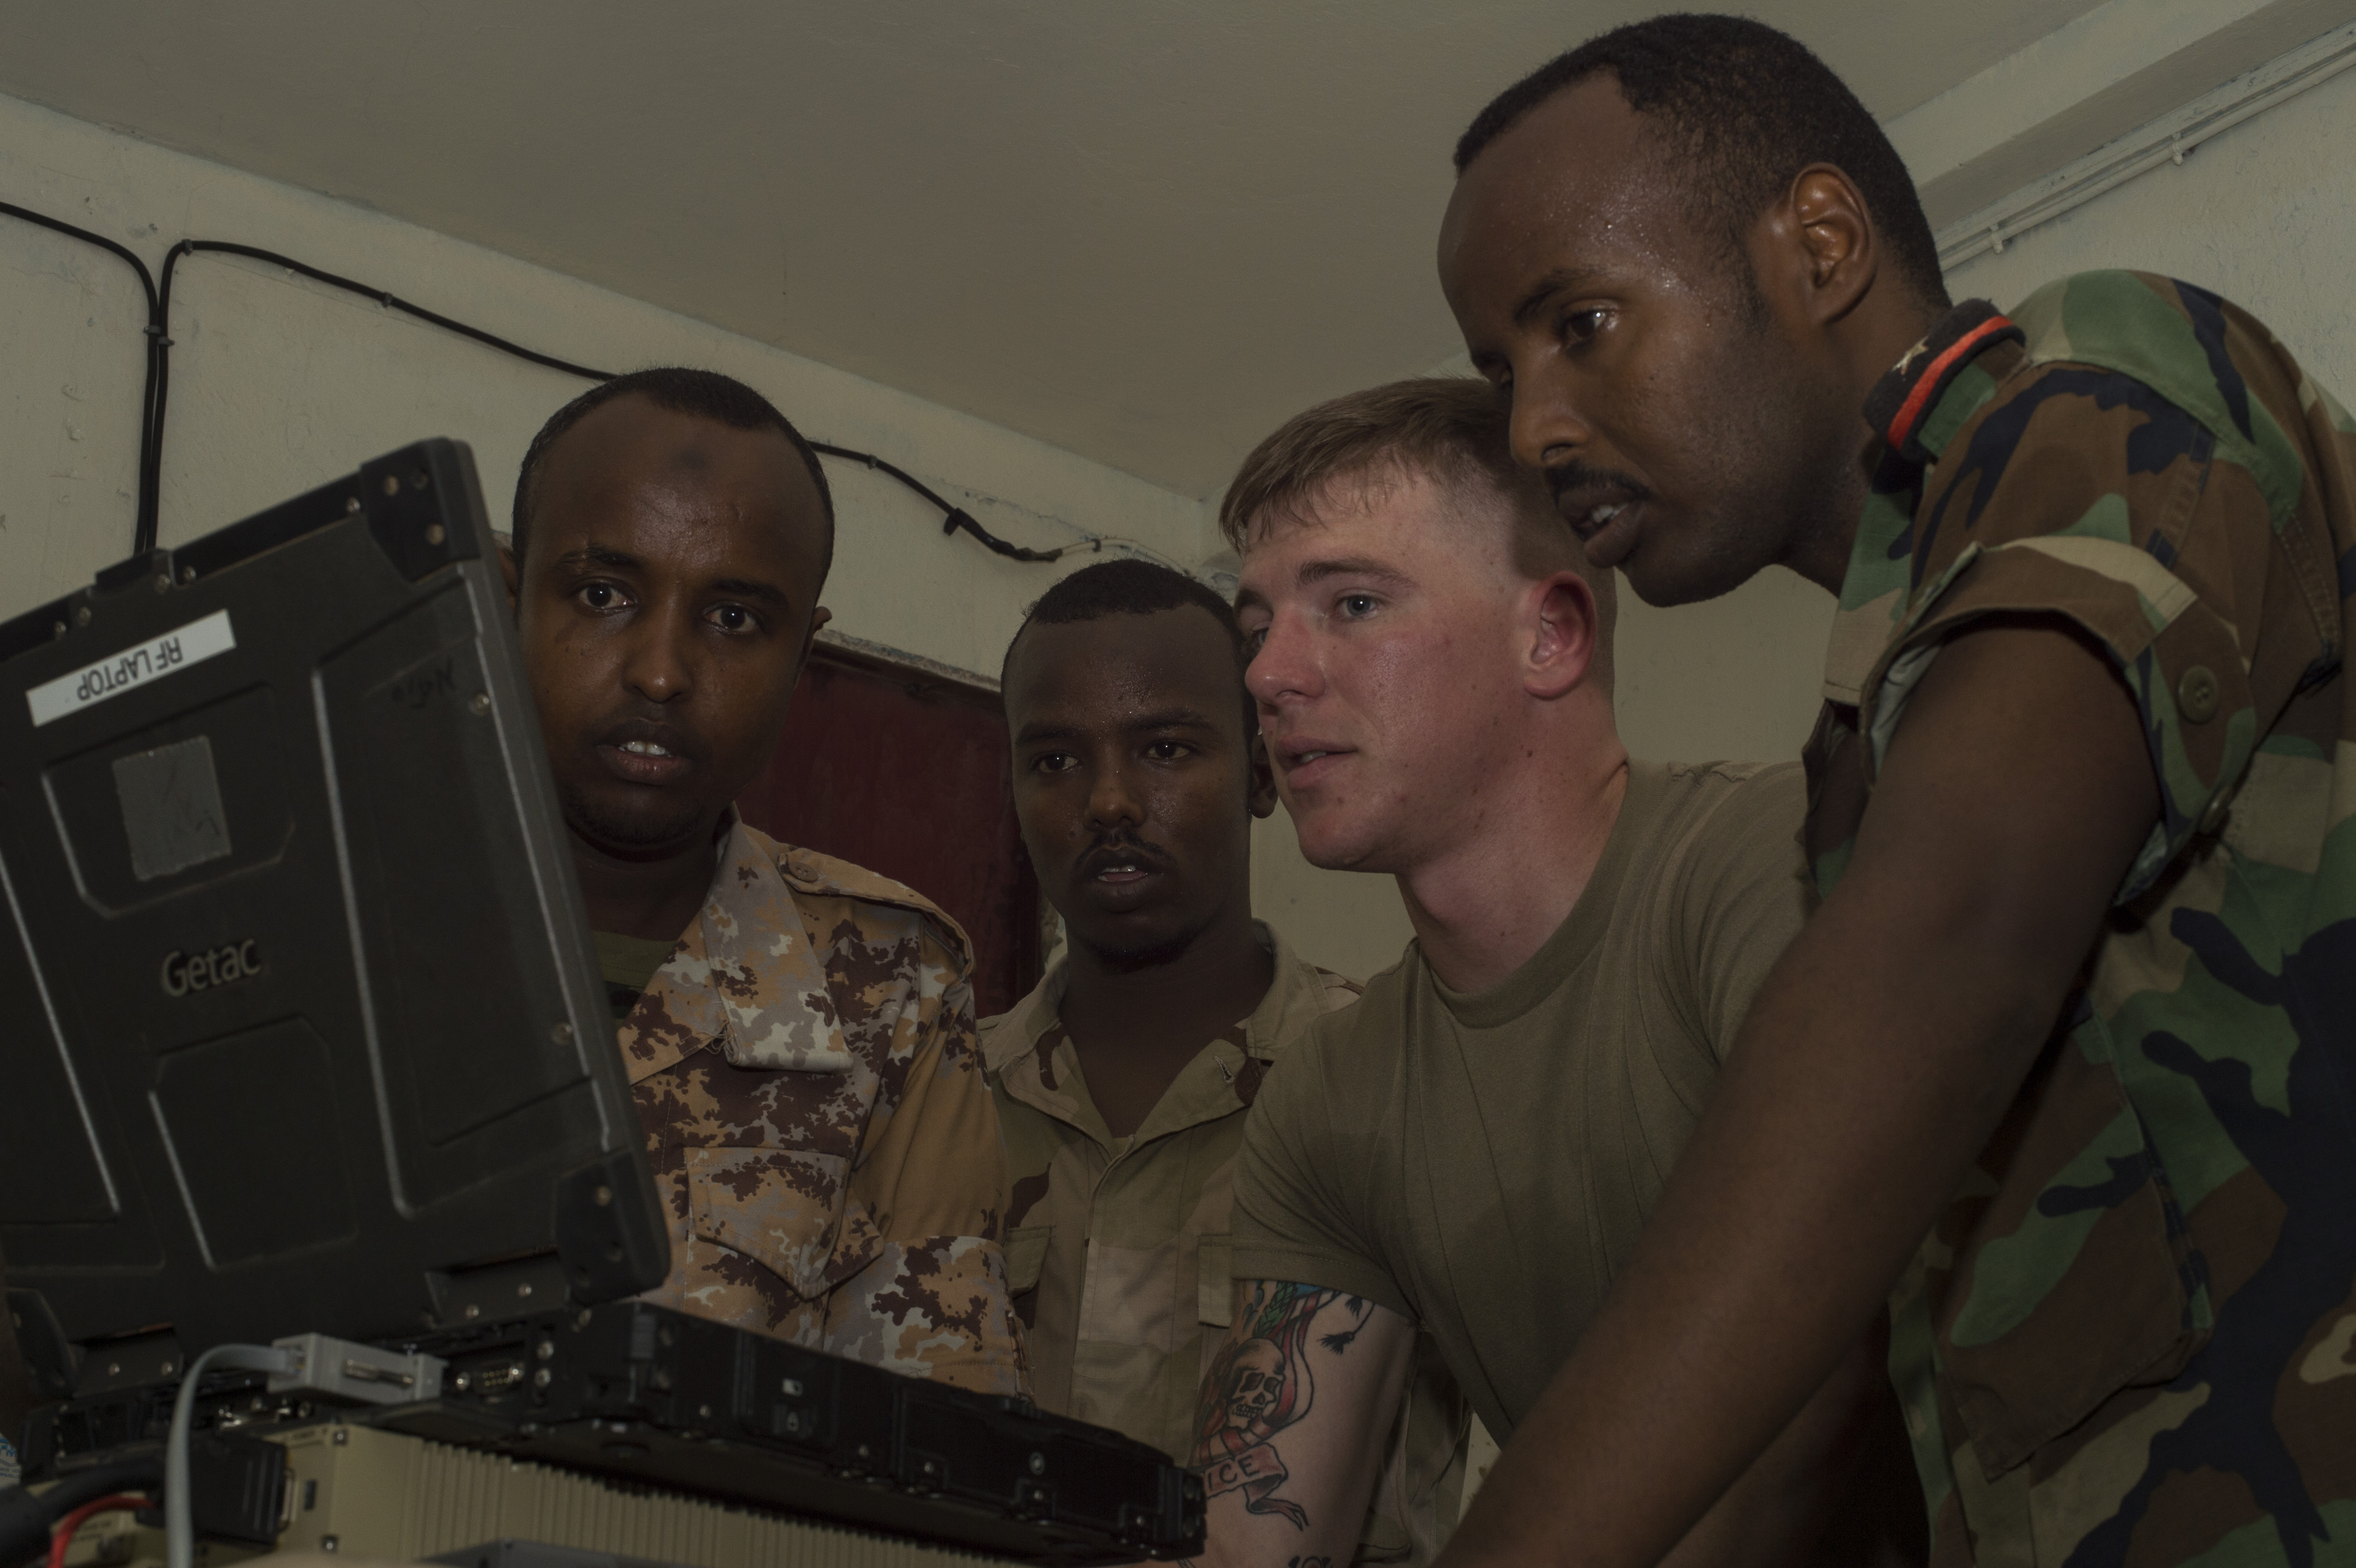 U.S. Army Spc. Dillin Hart, a Combined Joint Task Force-Horn of Africa technician on the Africa Data Sharing Network (ADSN) system, reviews network configurations with members of the Djibouti Armed Forces (FAD) during training validation Sept. 28, 2016, at FAD Headquarters in Djibouti.  While conducting the best practices training, the U.S. Army technicians assigned to Combined Joint Task-Horn of Africa, also held an ADSN validation with the FAD soldiers to prepare them to deploy to Somalia.  The ADSN provides network and Voice over Internet Protocol capabilities between the several African countries participating in the Africa Union Mission in Somalia. (U.S. Air Force photo by Staff Sgt. Eric Summers Jr./Released)